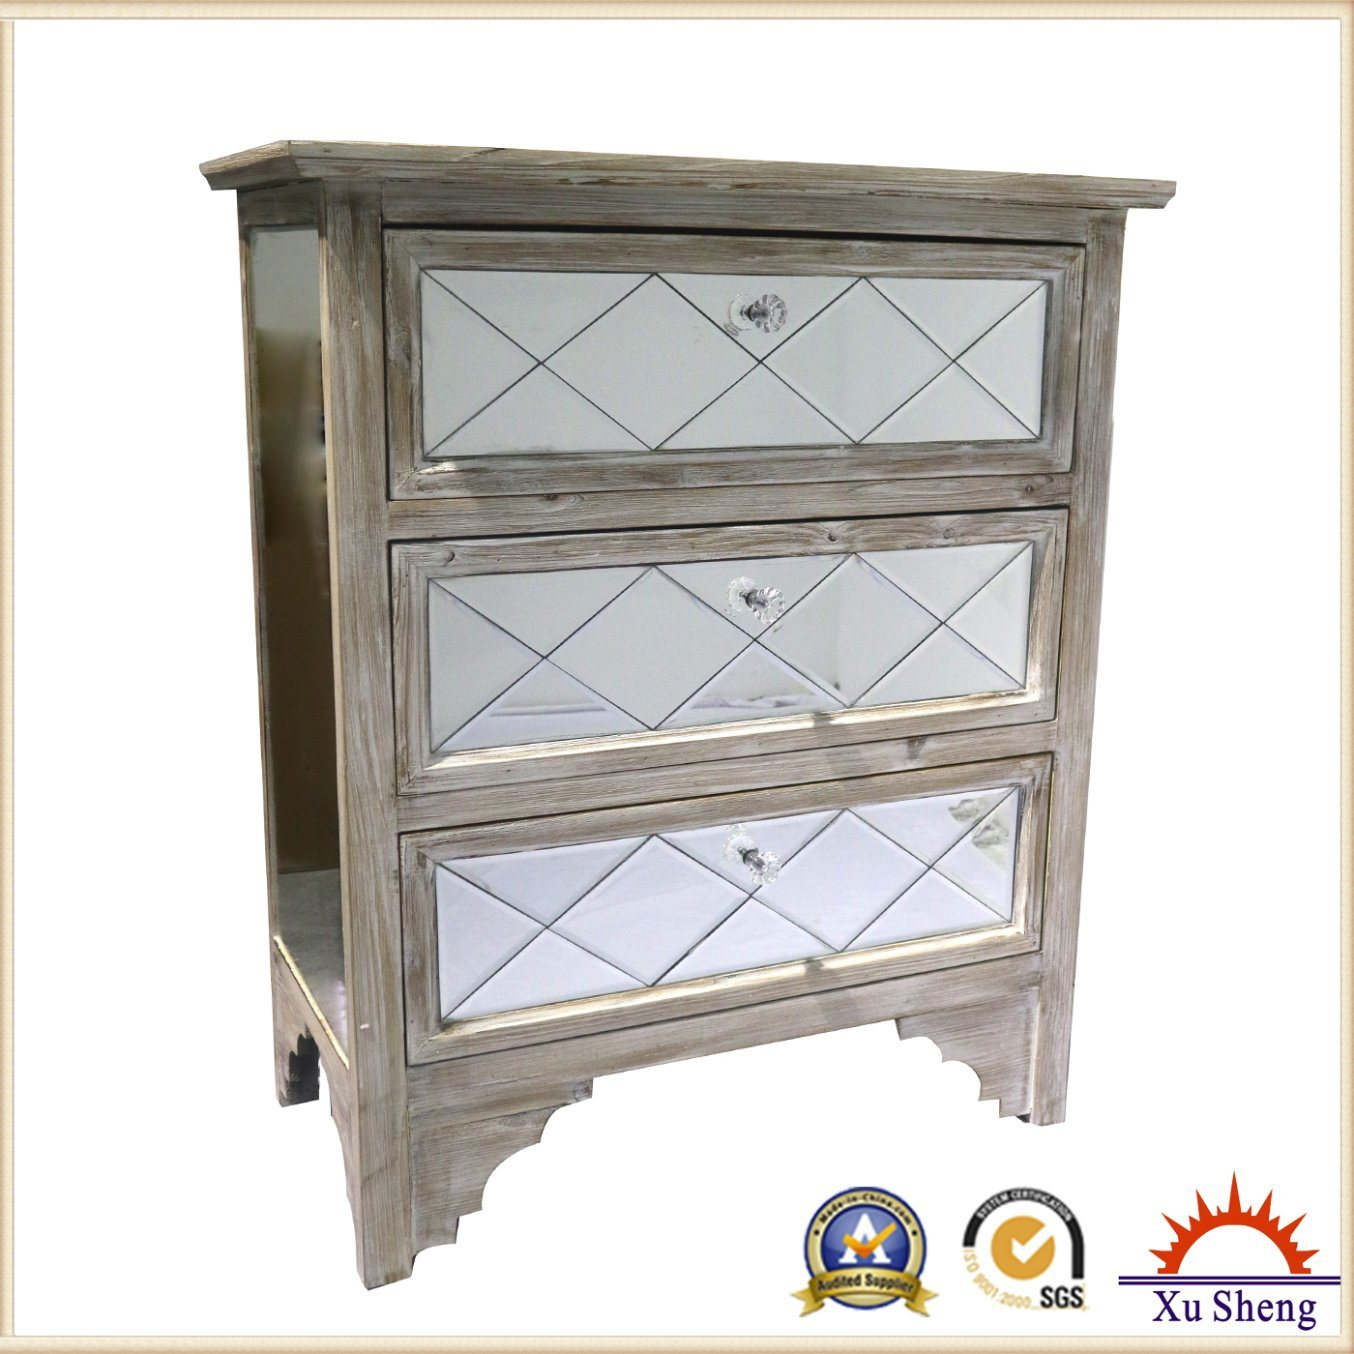 Mirrored Vineyard -Chic Four Drawers and One Door Chest Framed with Natural Timber